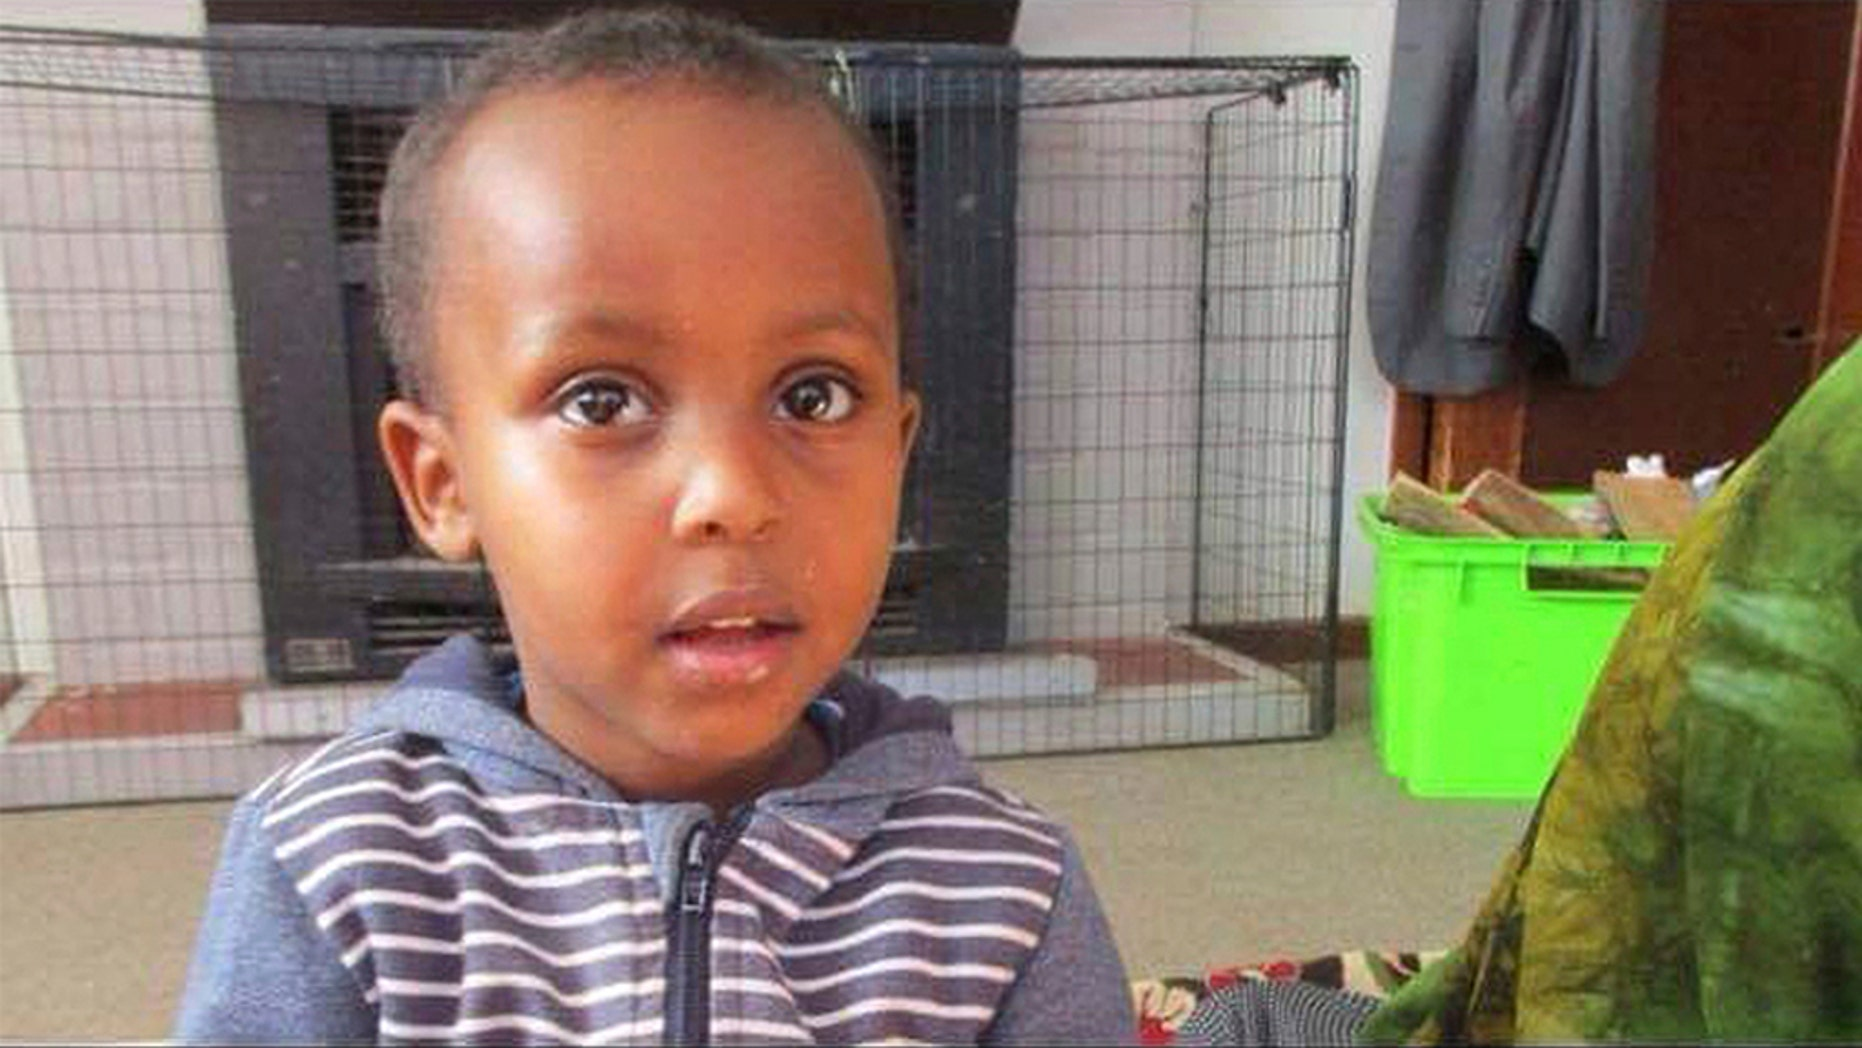 Before he became the youngest known victim of Christchurch's mass shooting, 3-year-old Mucaad Ibrahim had possessed an intelligence beyond his years, and an affinity for his elders.(Abdi Ibrahim via AP)